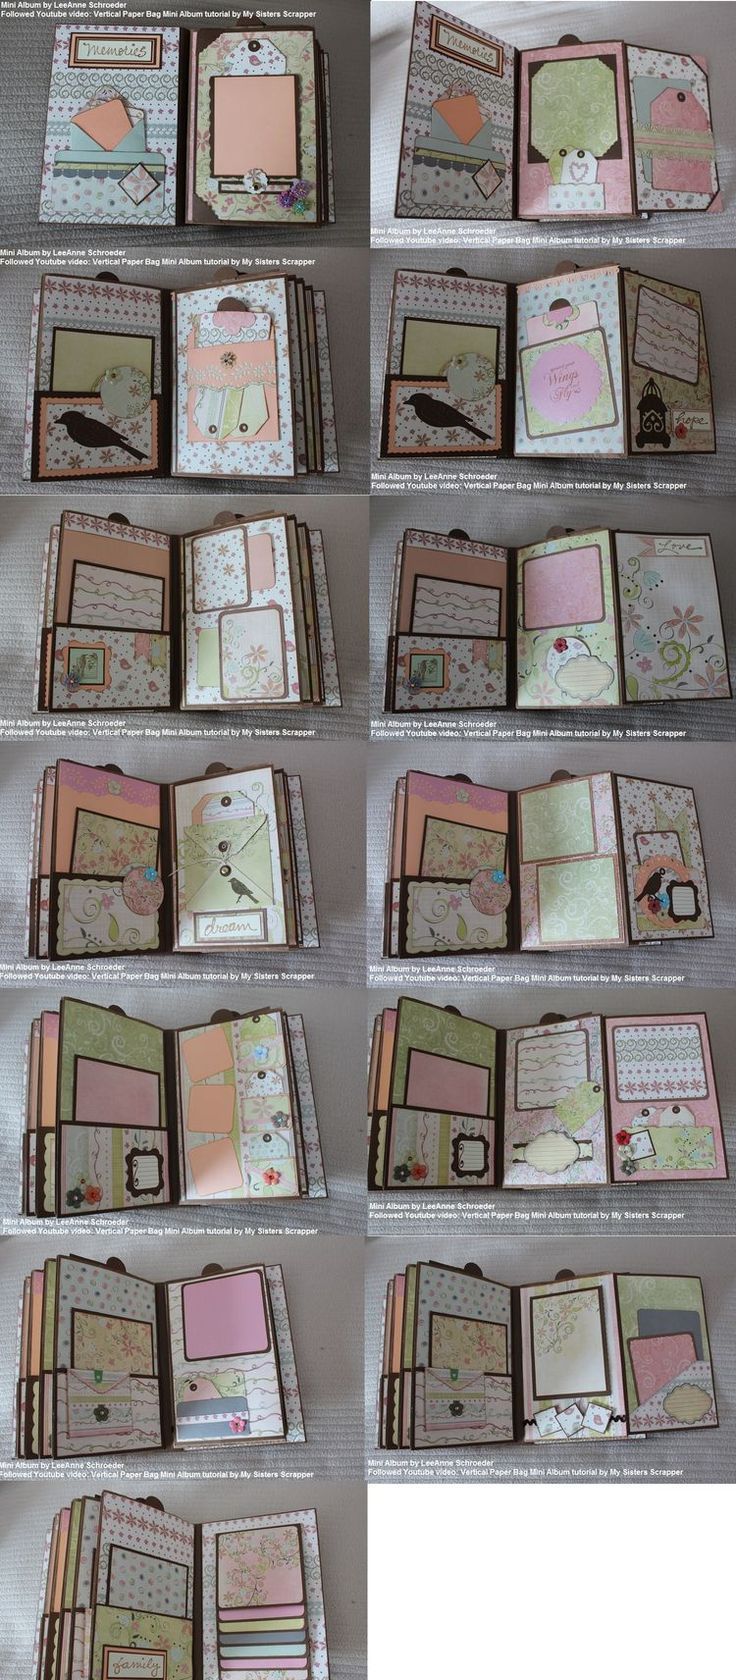 Scrapbook ideas youtube - Find This Pin And More On Interactive Scrapbook Ideas